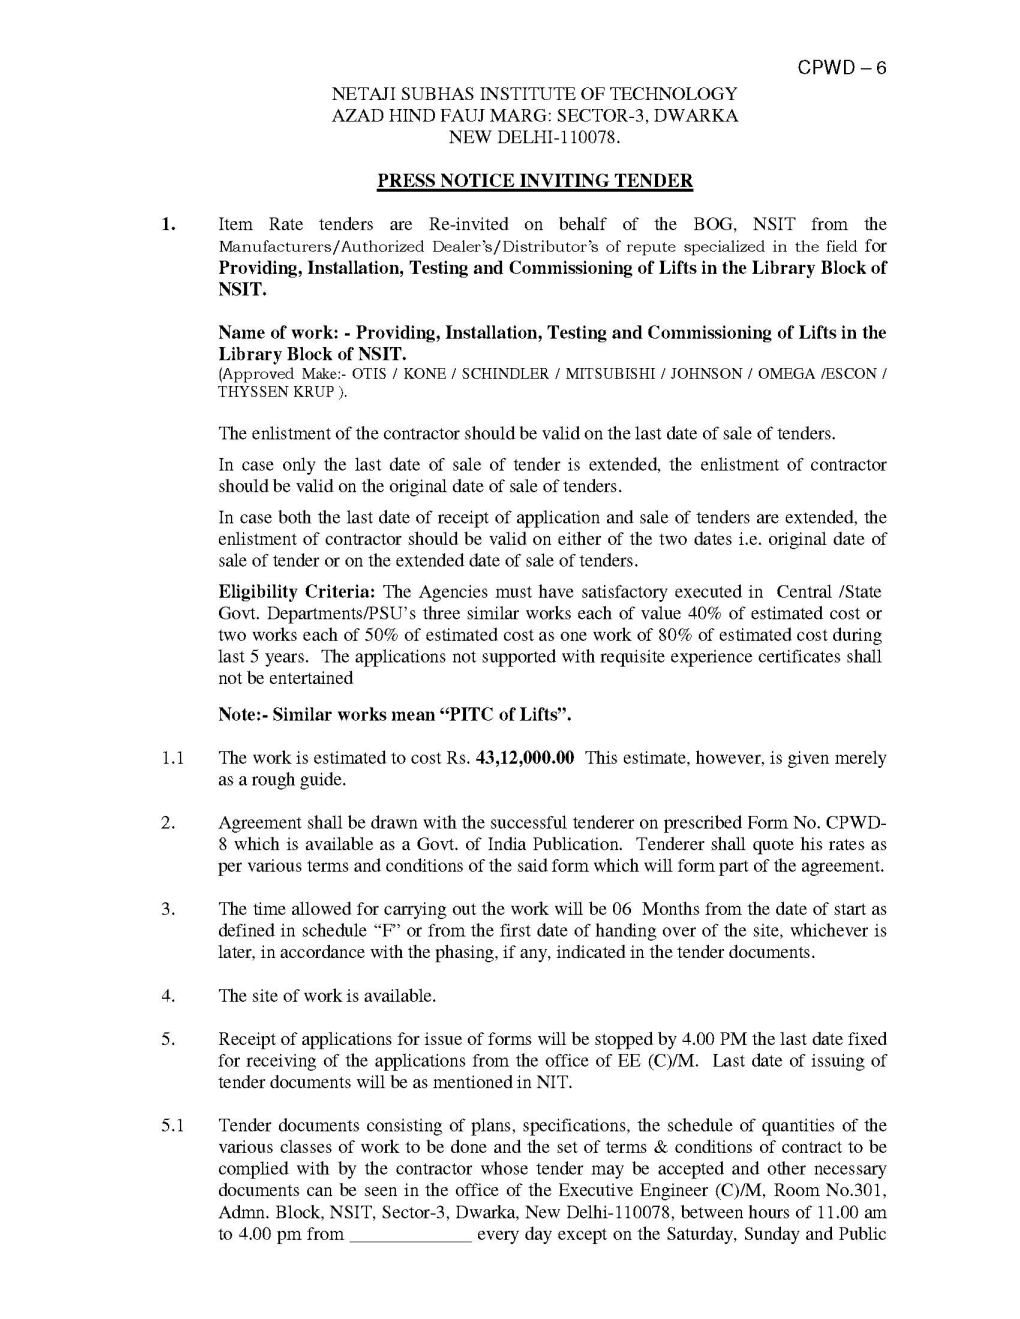 CPWD General Conditions of Contract Download - 2018-2019